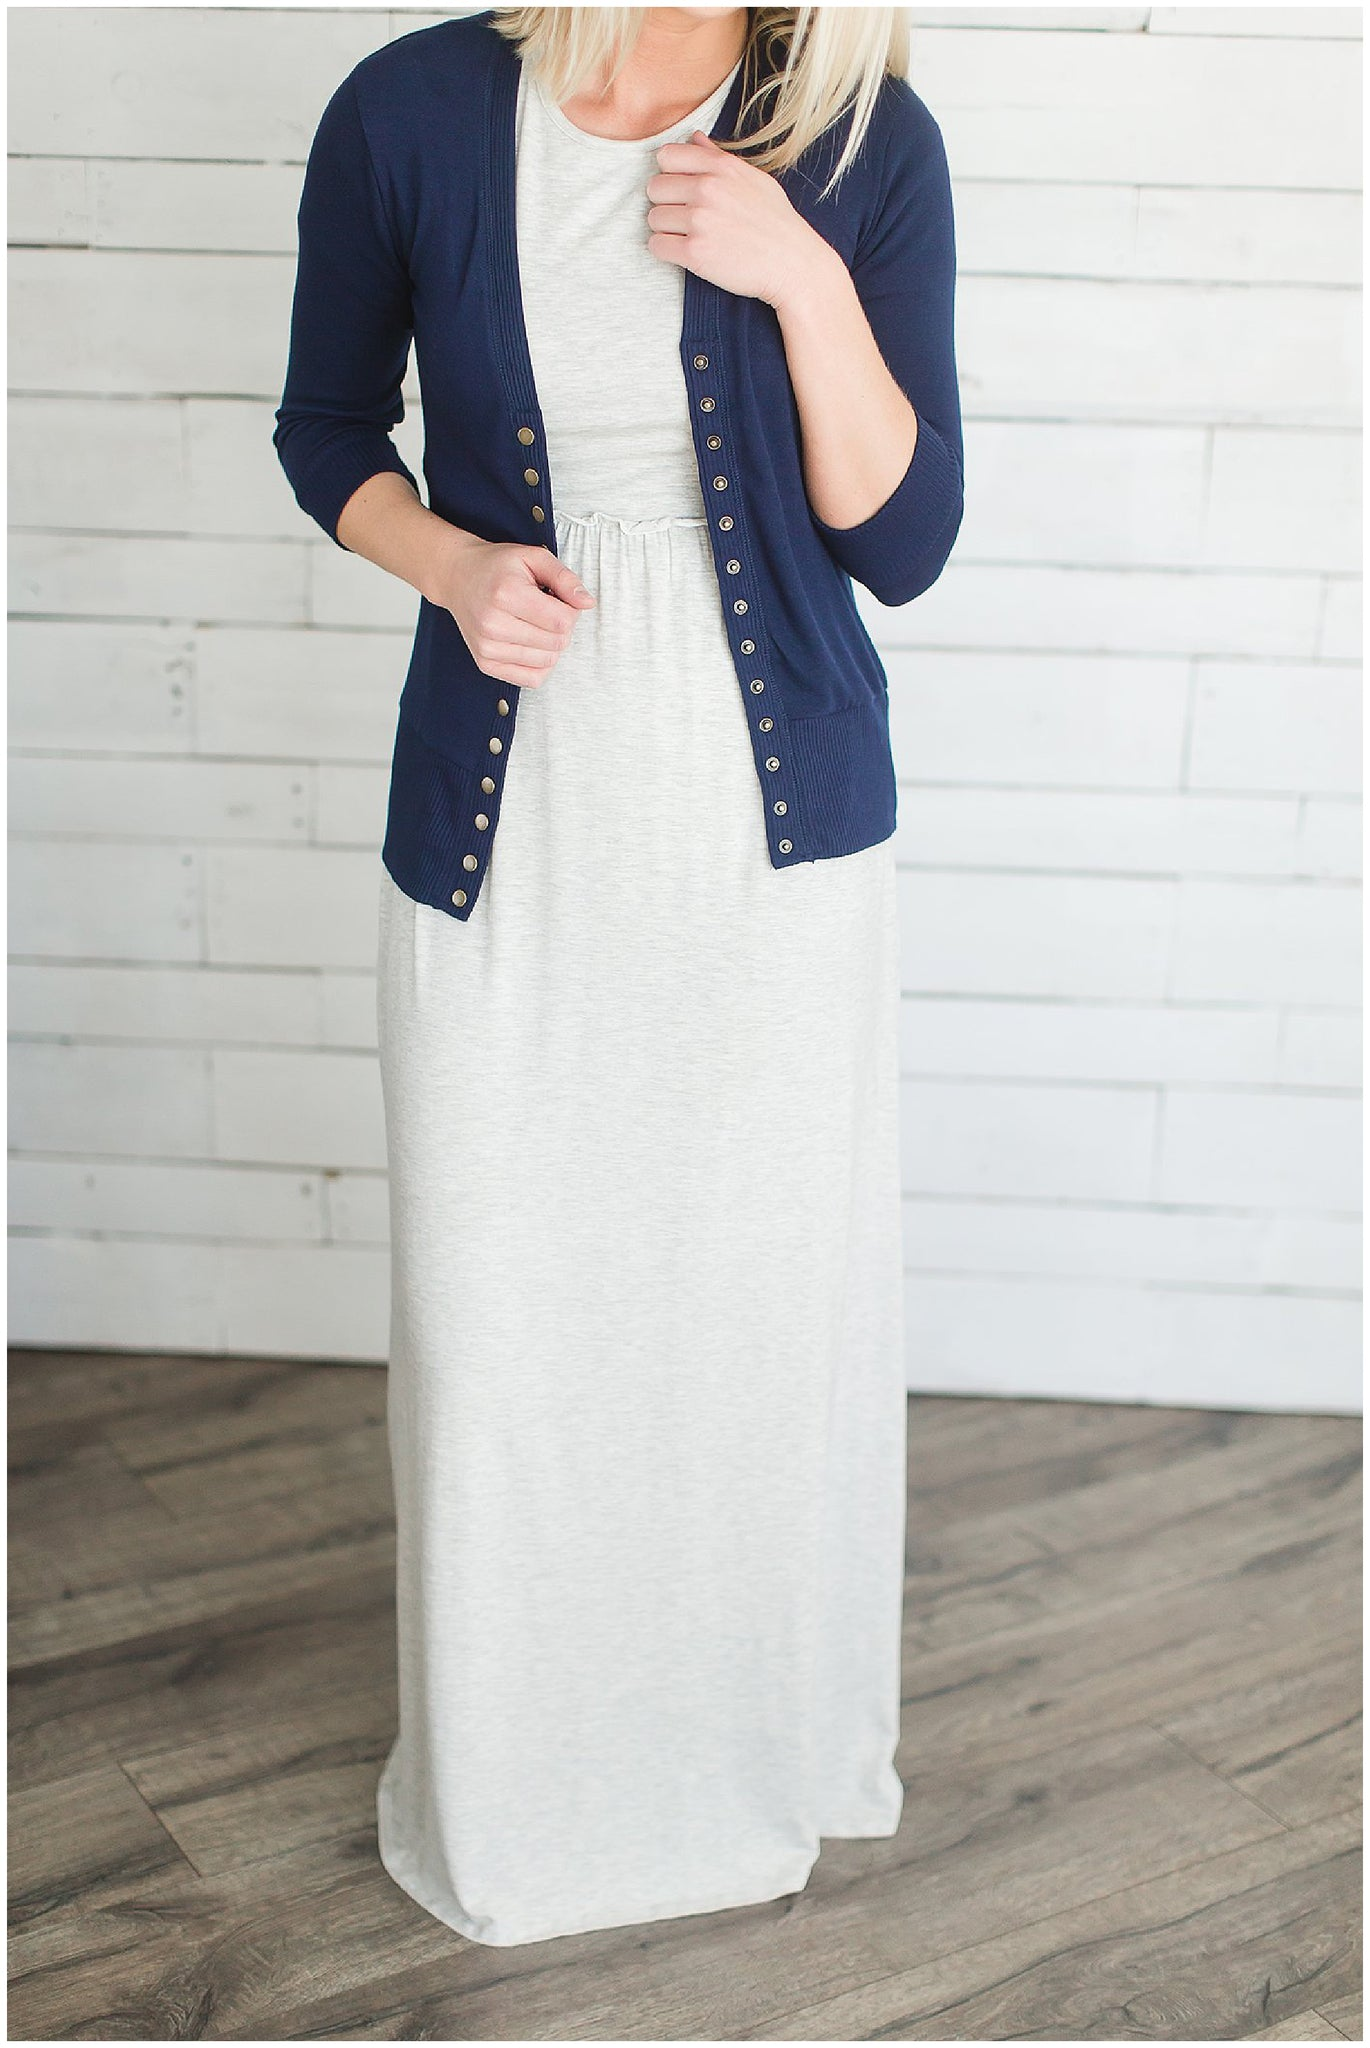 Women's Modest Maxi Dress and Cardigan